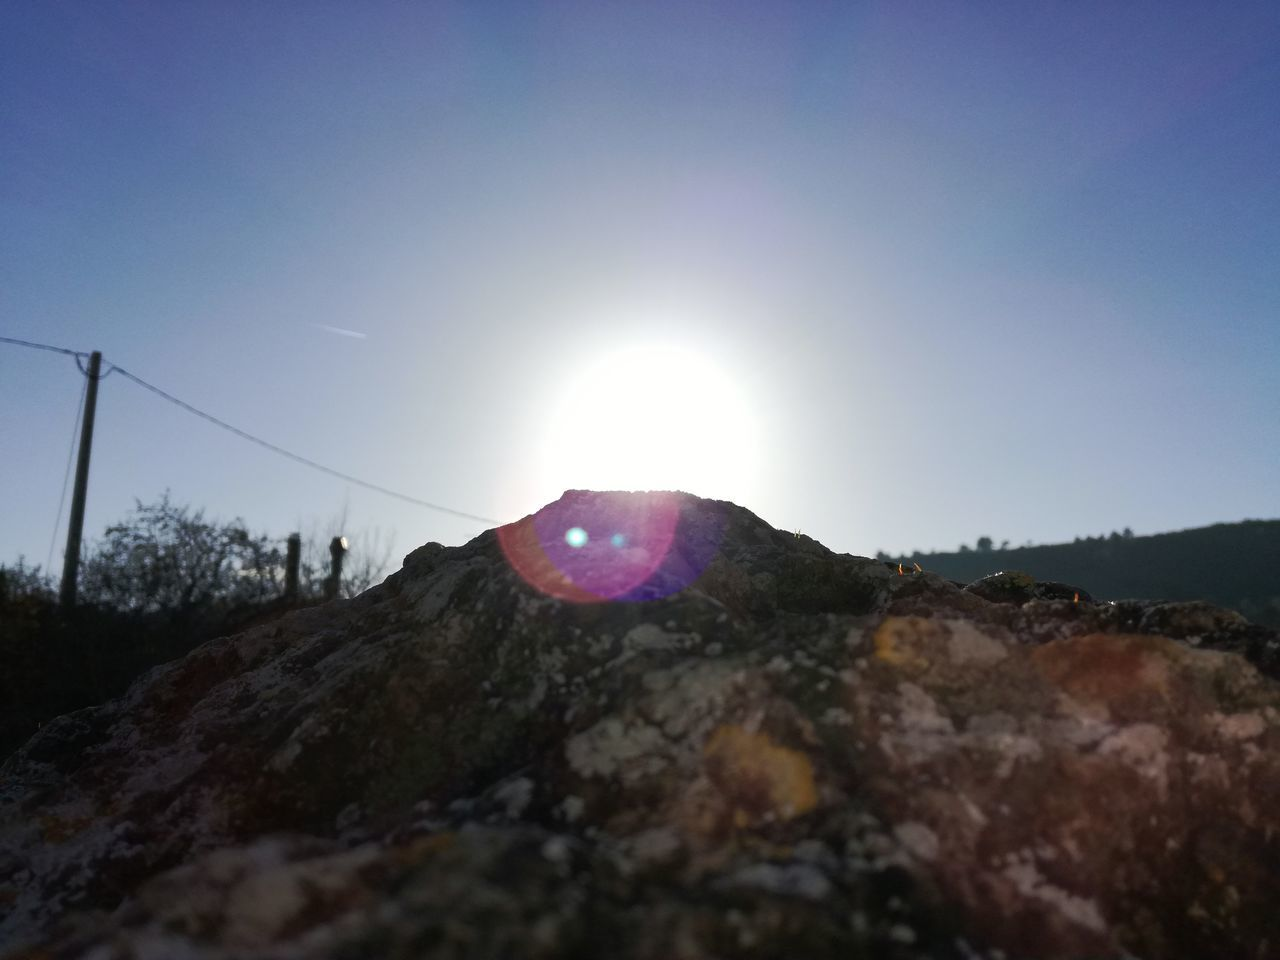 sun, lens flare, sunbeam, sunlight, nature, mountain, clear sky, outdoors, landscape, beauty in nature, sky, day, no people